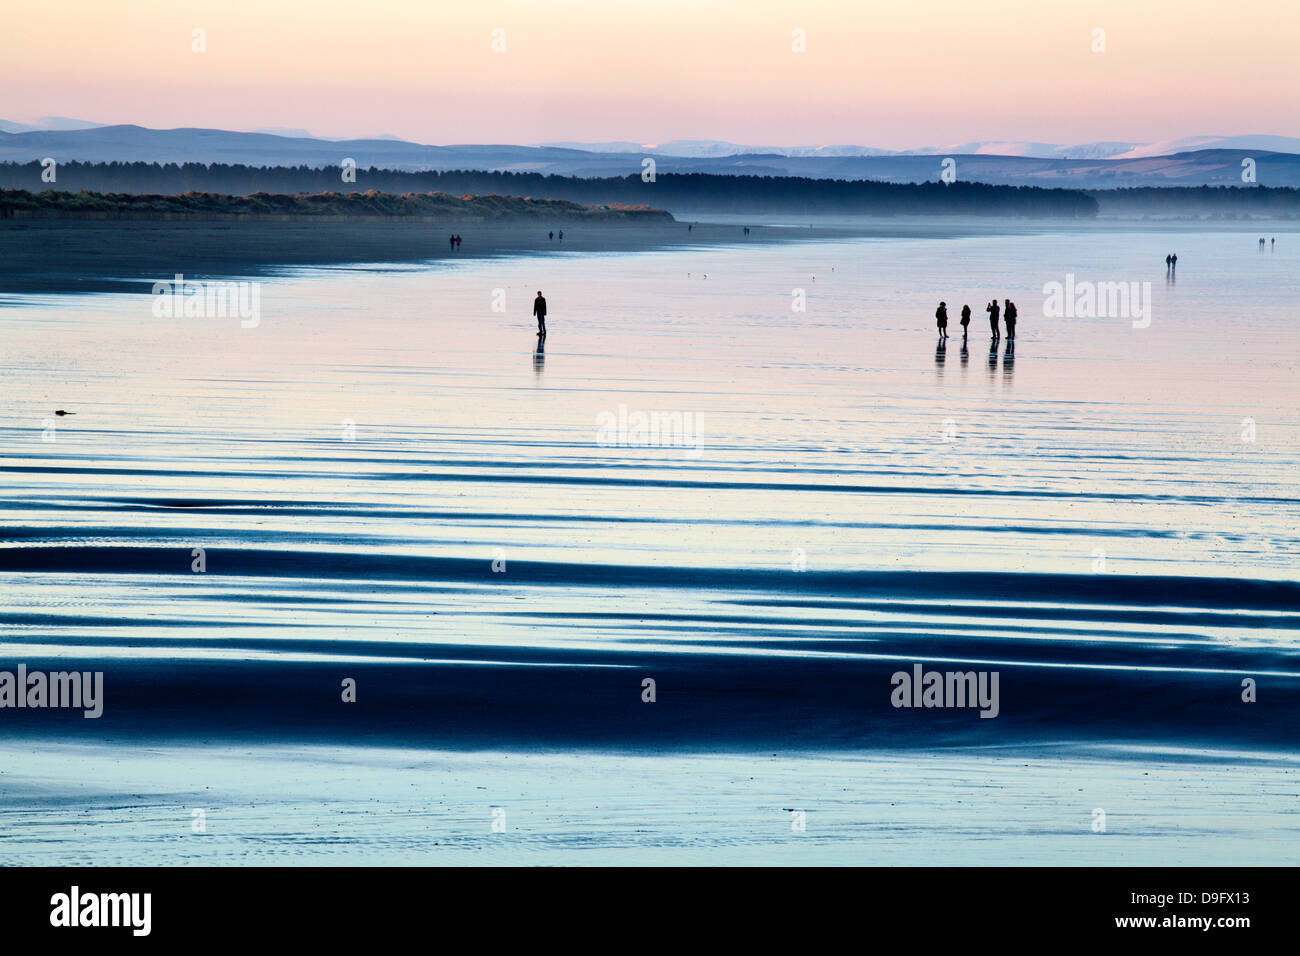 Silhouetted figures on the West Sands at dusk, St Andrews, Fife, Scotland, UK - Stock Image